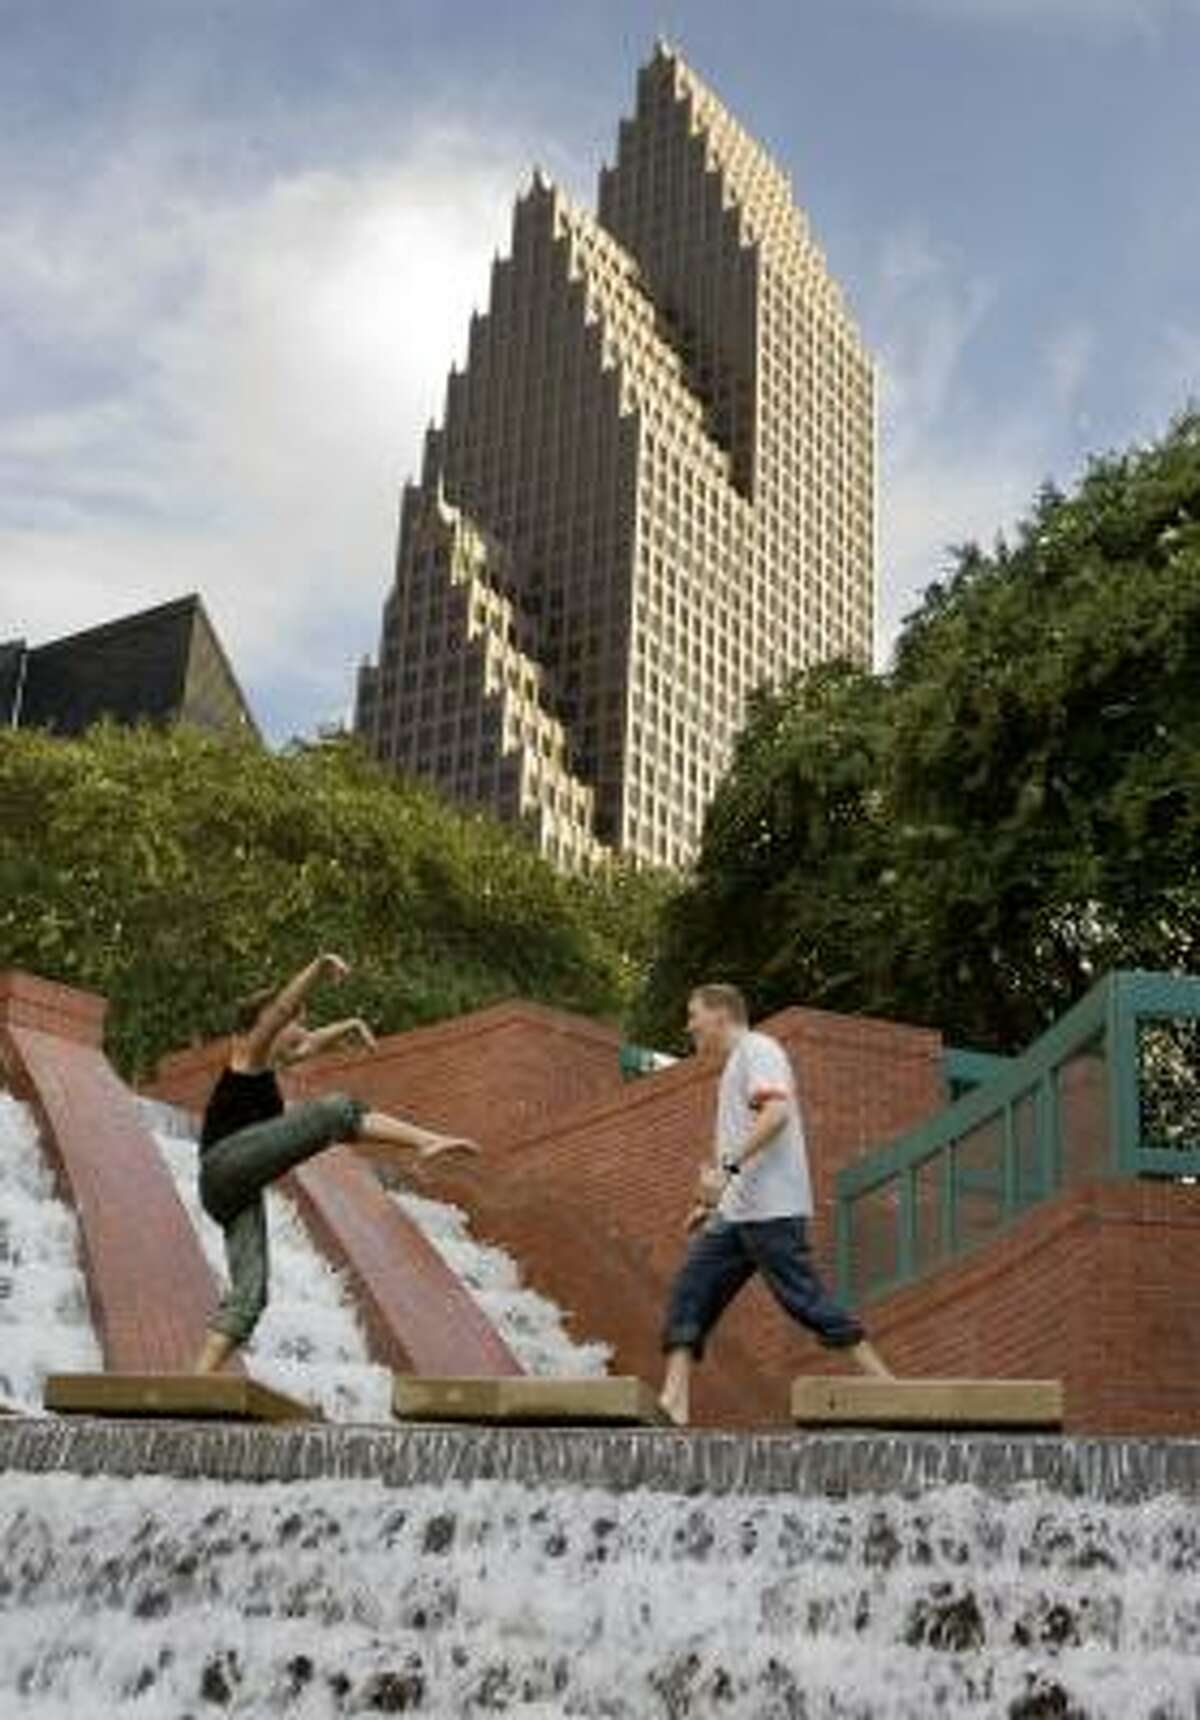 With the Bank of America Center behind them, Amanda Manzer and Joseph Chapman have fun downtown on Thursday. The building was designed by Philip Johnson and John Burgee.